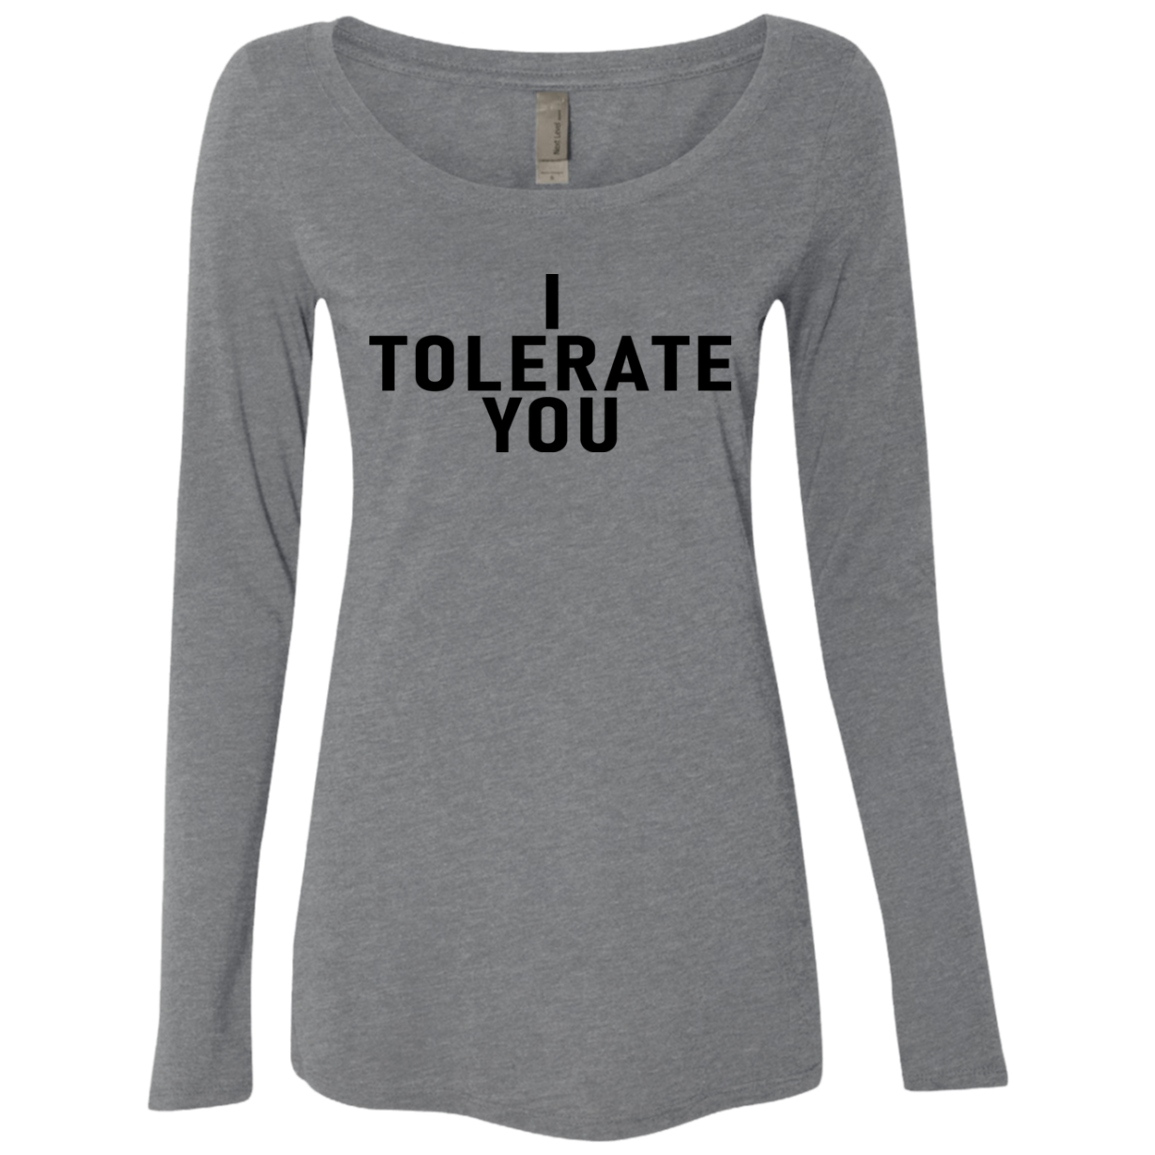 I Tolerate You Women's Long Sleeve Tee